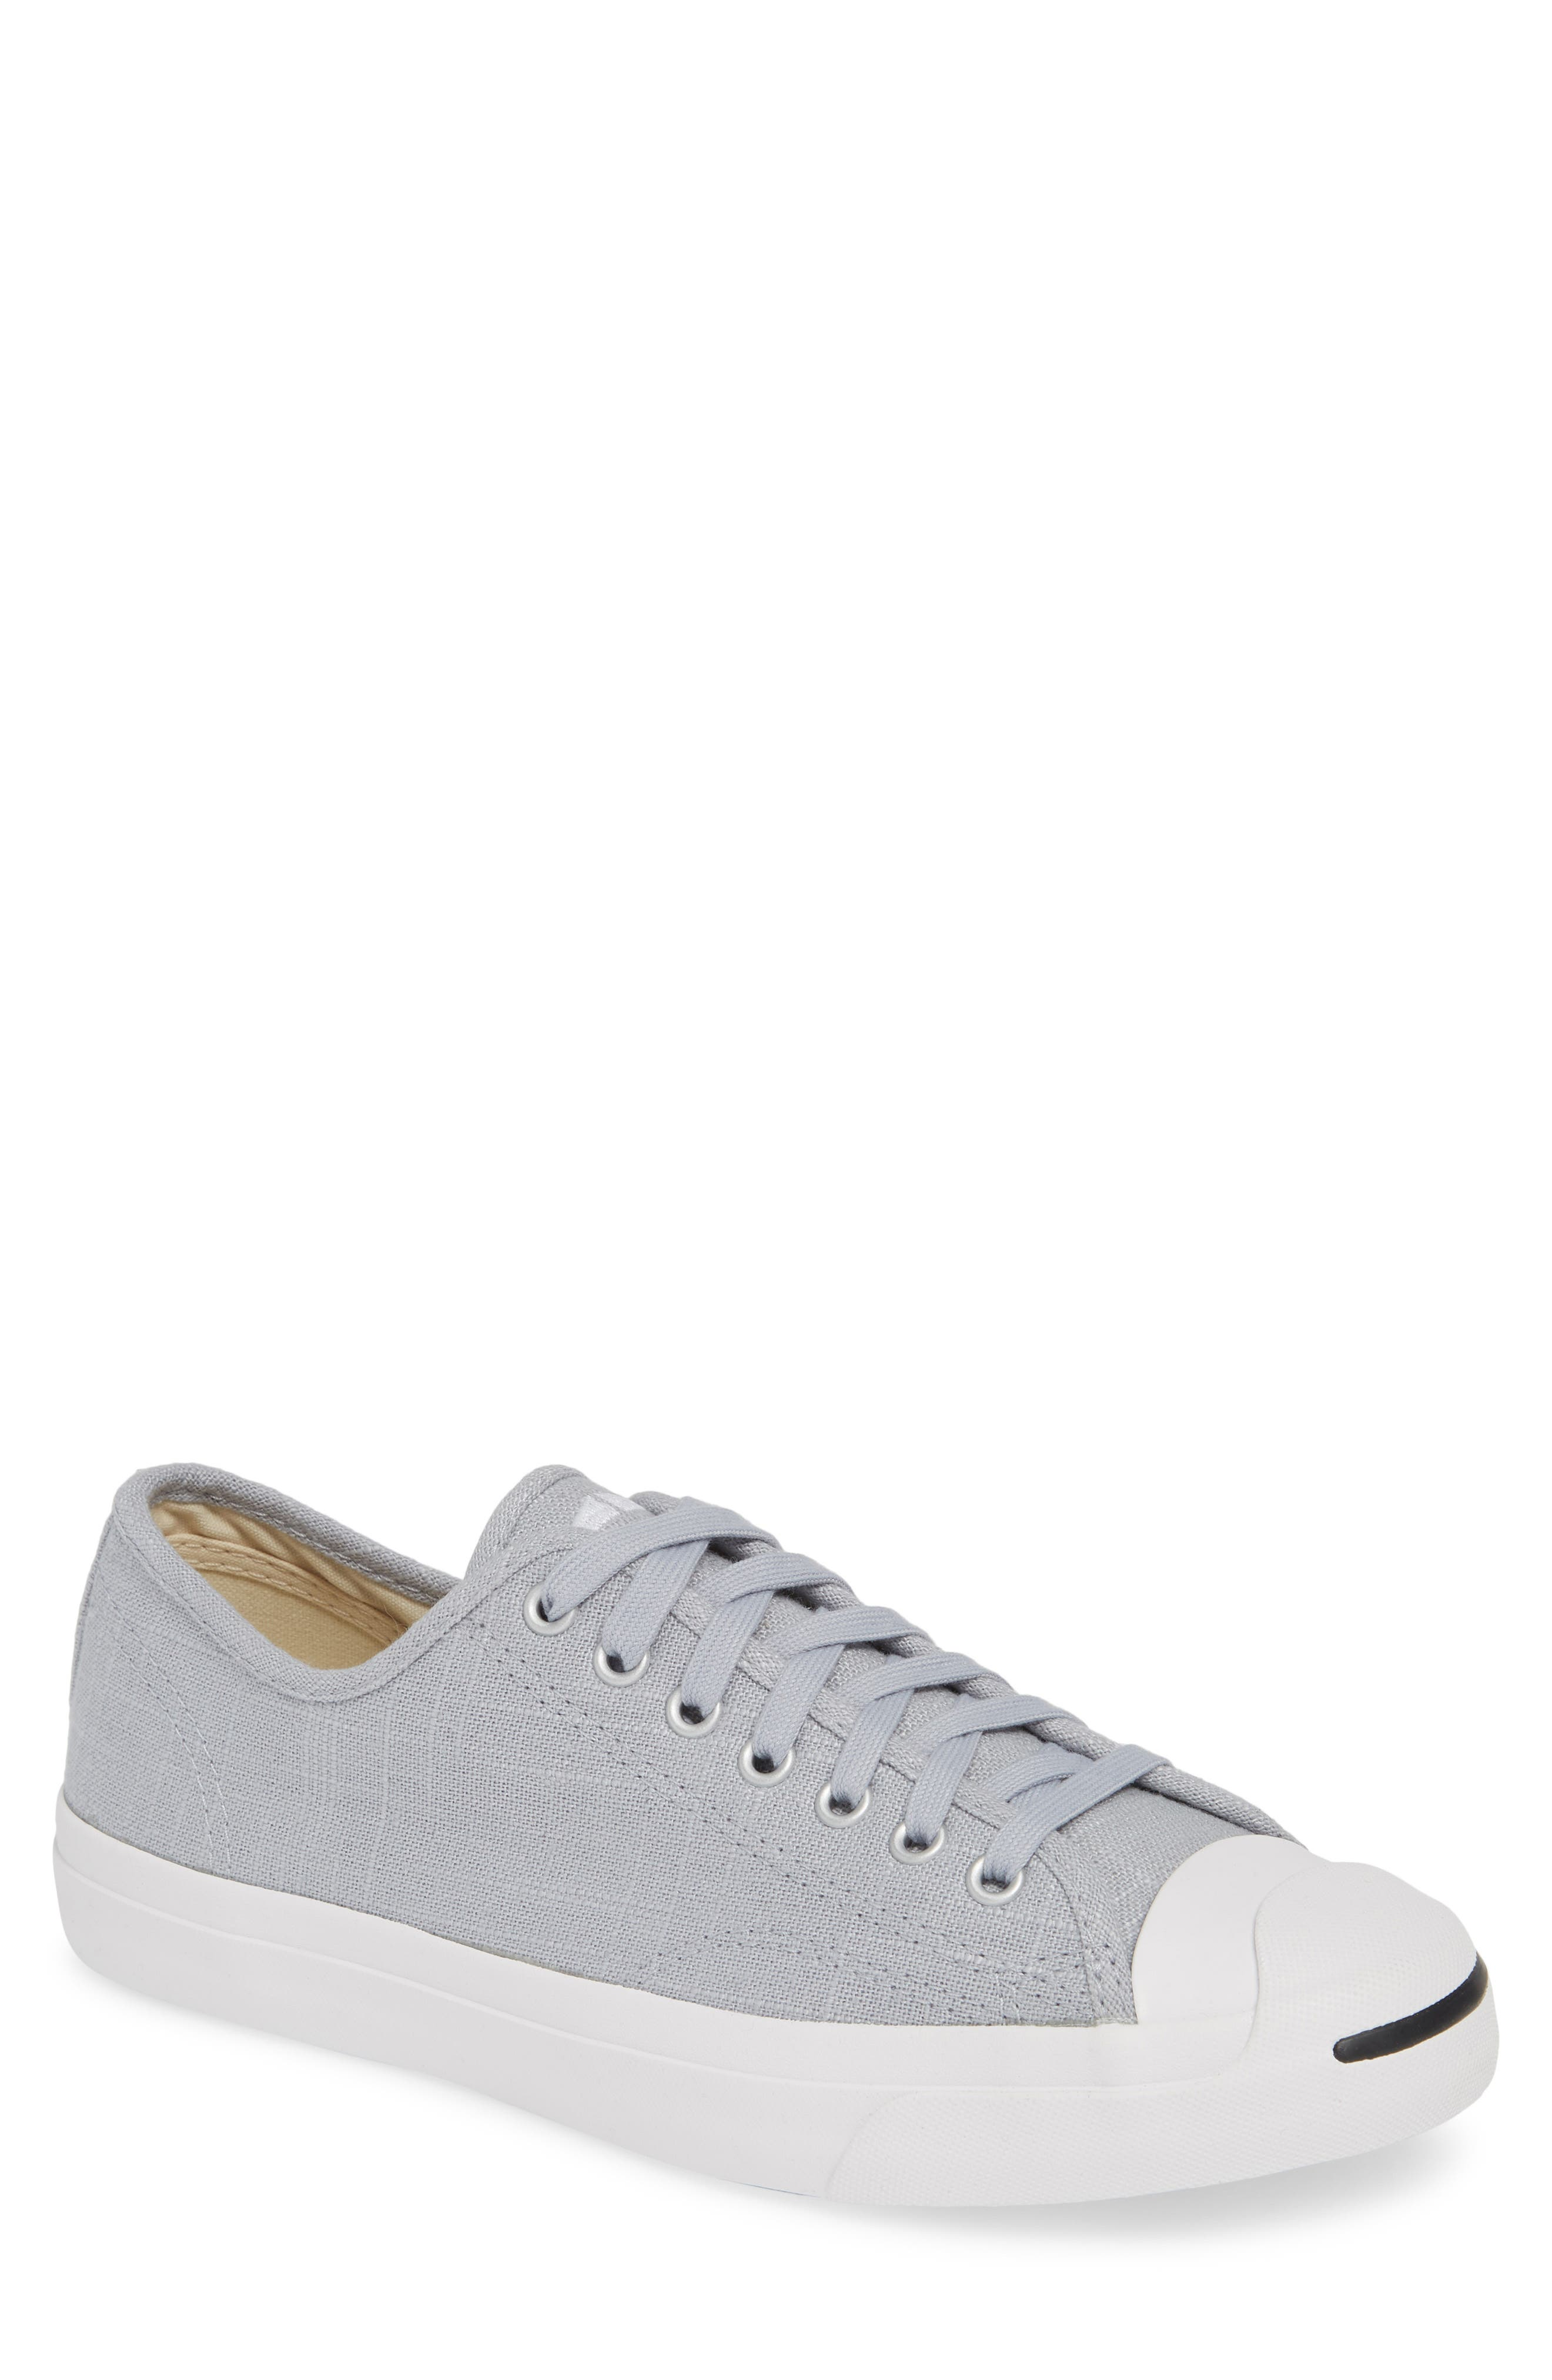 3011ad0ca0ff Converse Jack Purcell